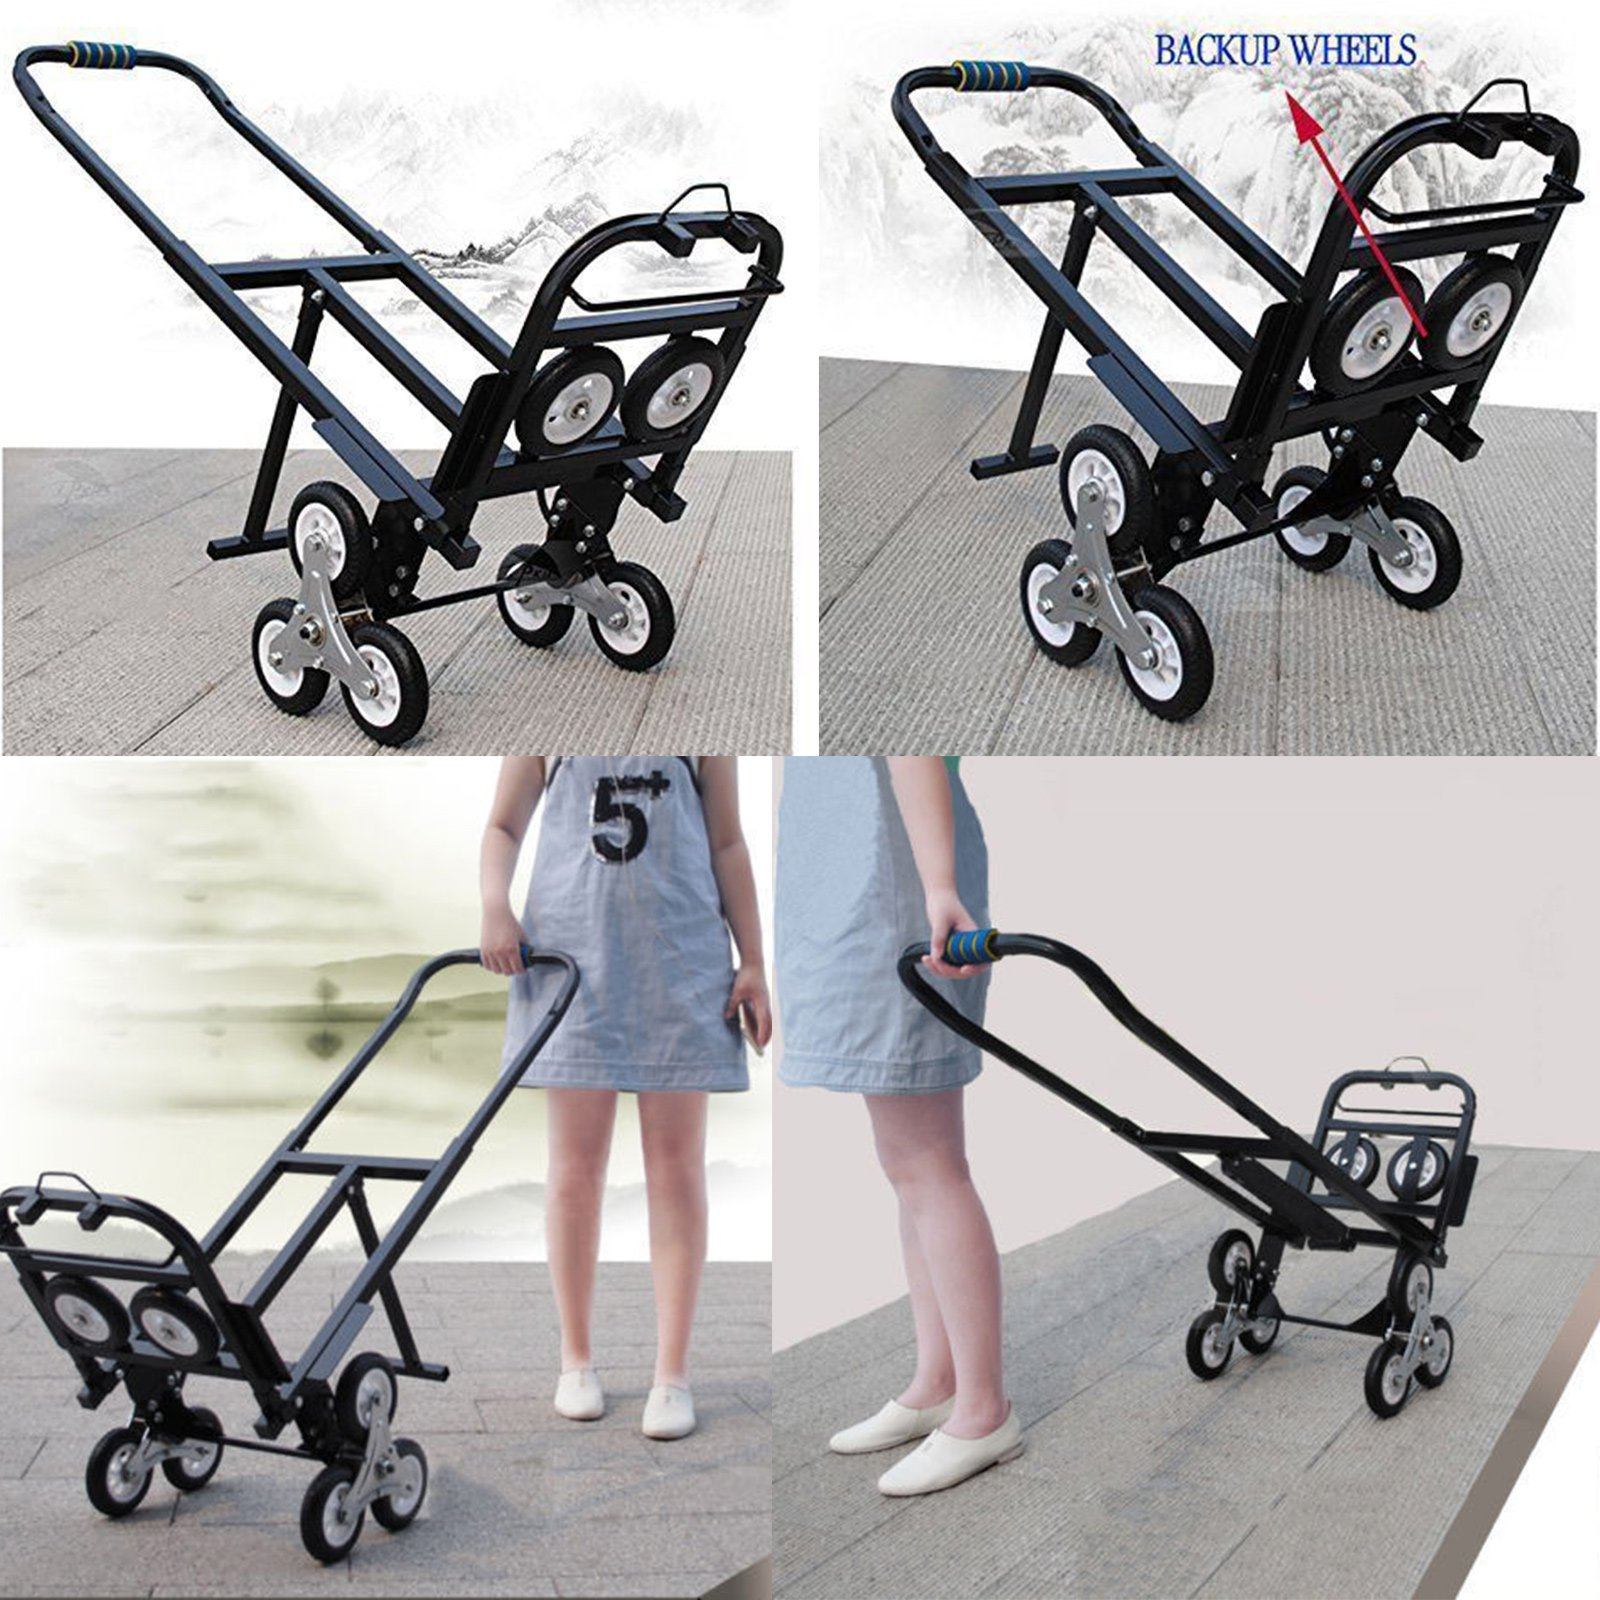 Happybuy Stair Climbing Cart 45 Inches Portable Hand Truck 2x Three-wheel Hand Truck Stair Climber 330LB Capacity Folding Stair Hand Truck Heavy Duty by Happybuy (Image #8)